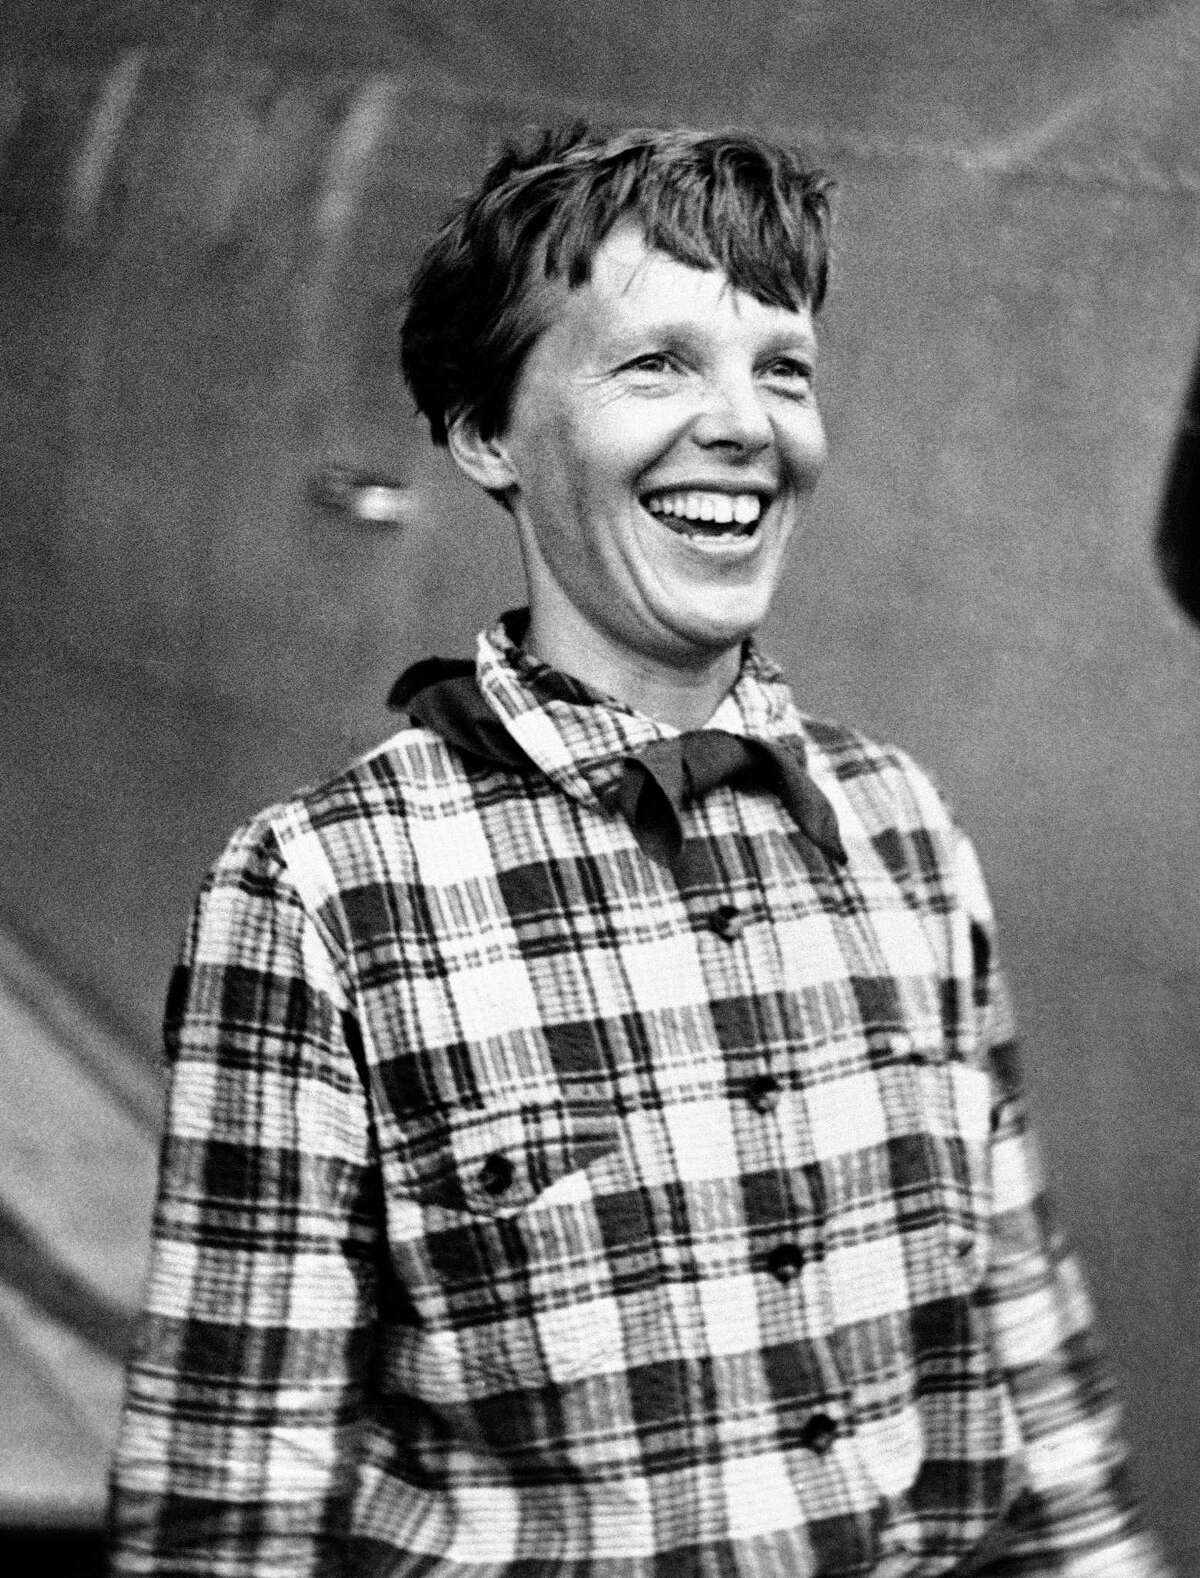 In this June 6, 1937, file photo, Amelia Earhart, the American airwoman who was flying round the world, arrived at Port Natal, Brazil, and took off on her 2,240-mile flight across the South Atlantic to Dakar, Africa. A group investigating the mystery of what happened to Amelia Earhart announced on Oct. 22, 2016, that it has uncovered another connection between the pioneering female pilot and a body found 76 years ago on a remote Pacific island.